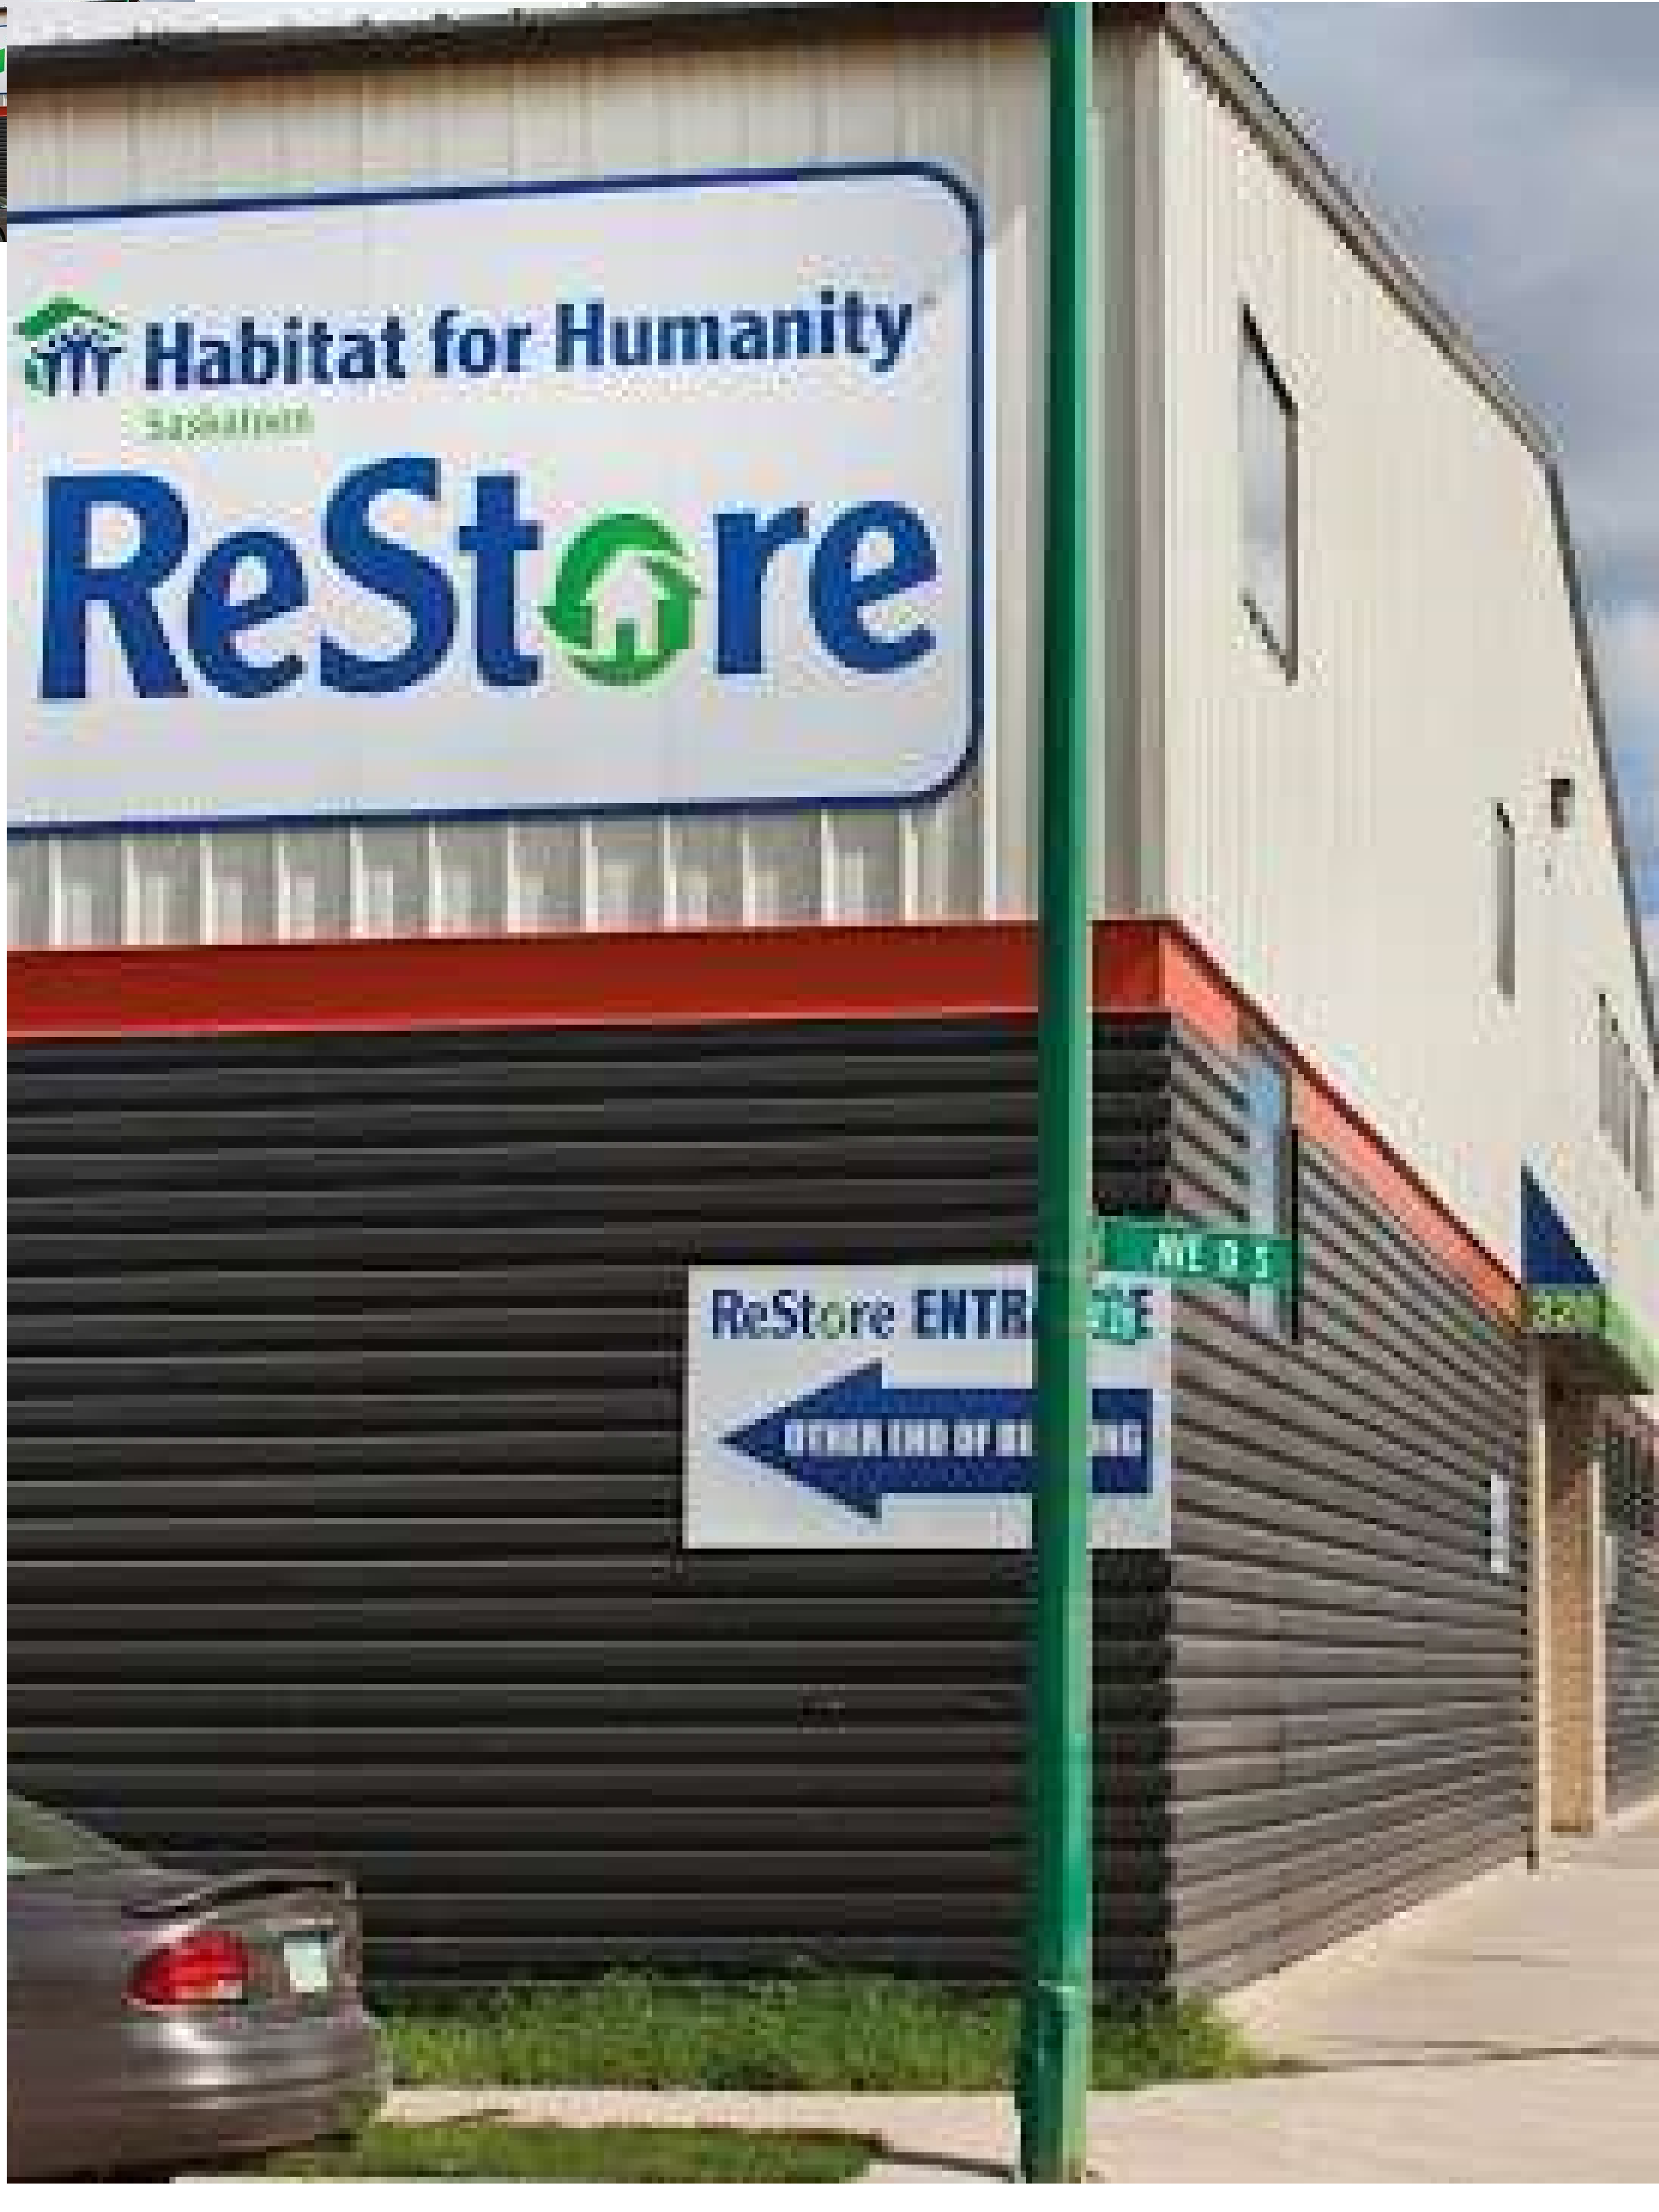 Bringing Habitat for Humanity into the Neighbourhood: Keeping 20th Street a Positive Place